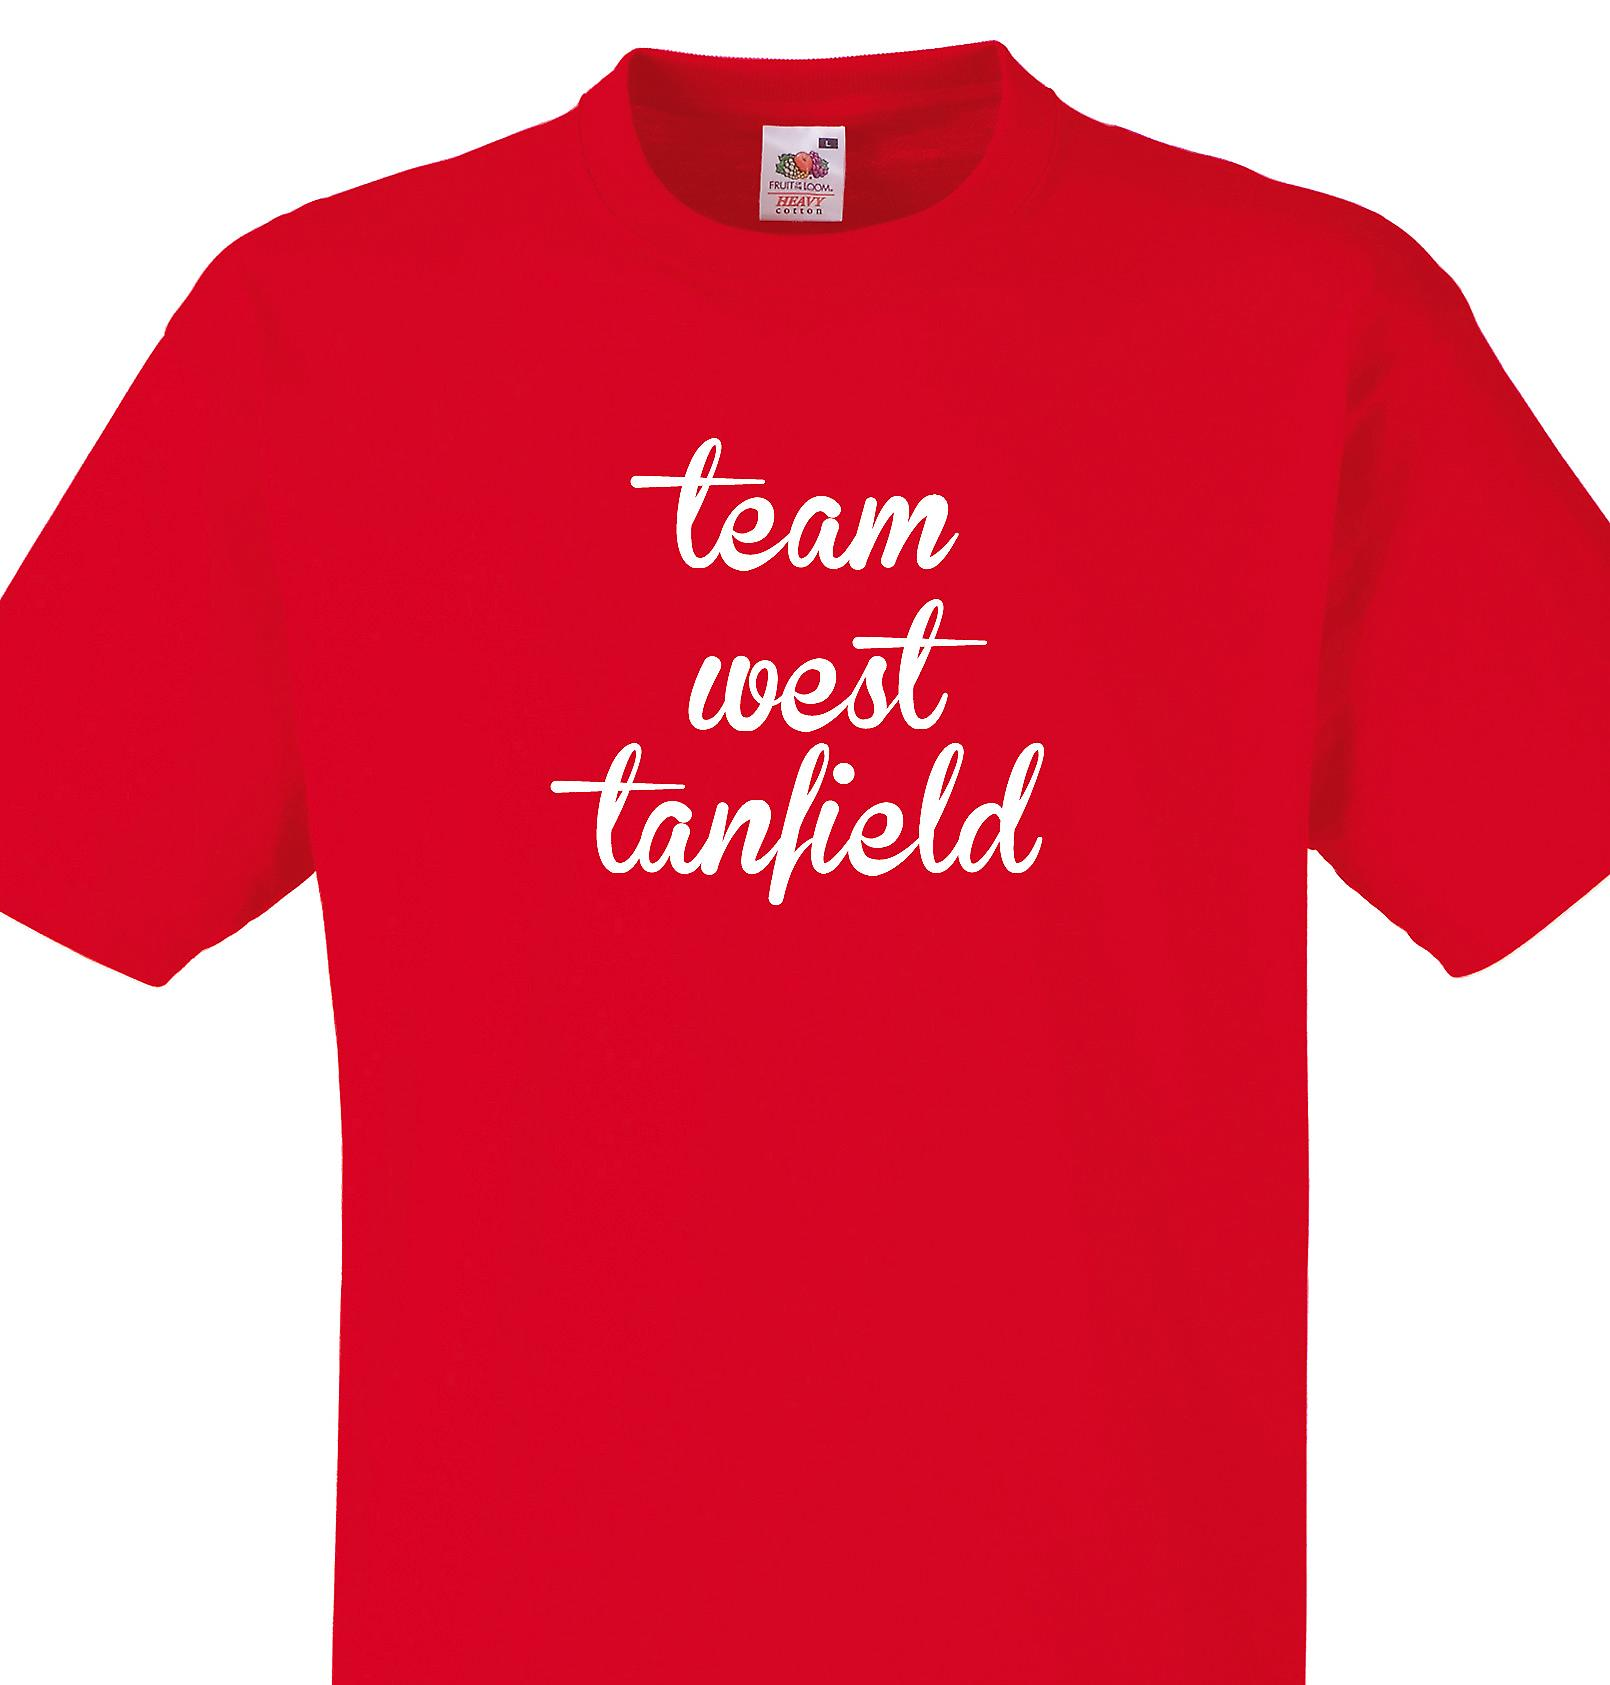 Team West tanfield Red T shirt